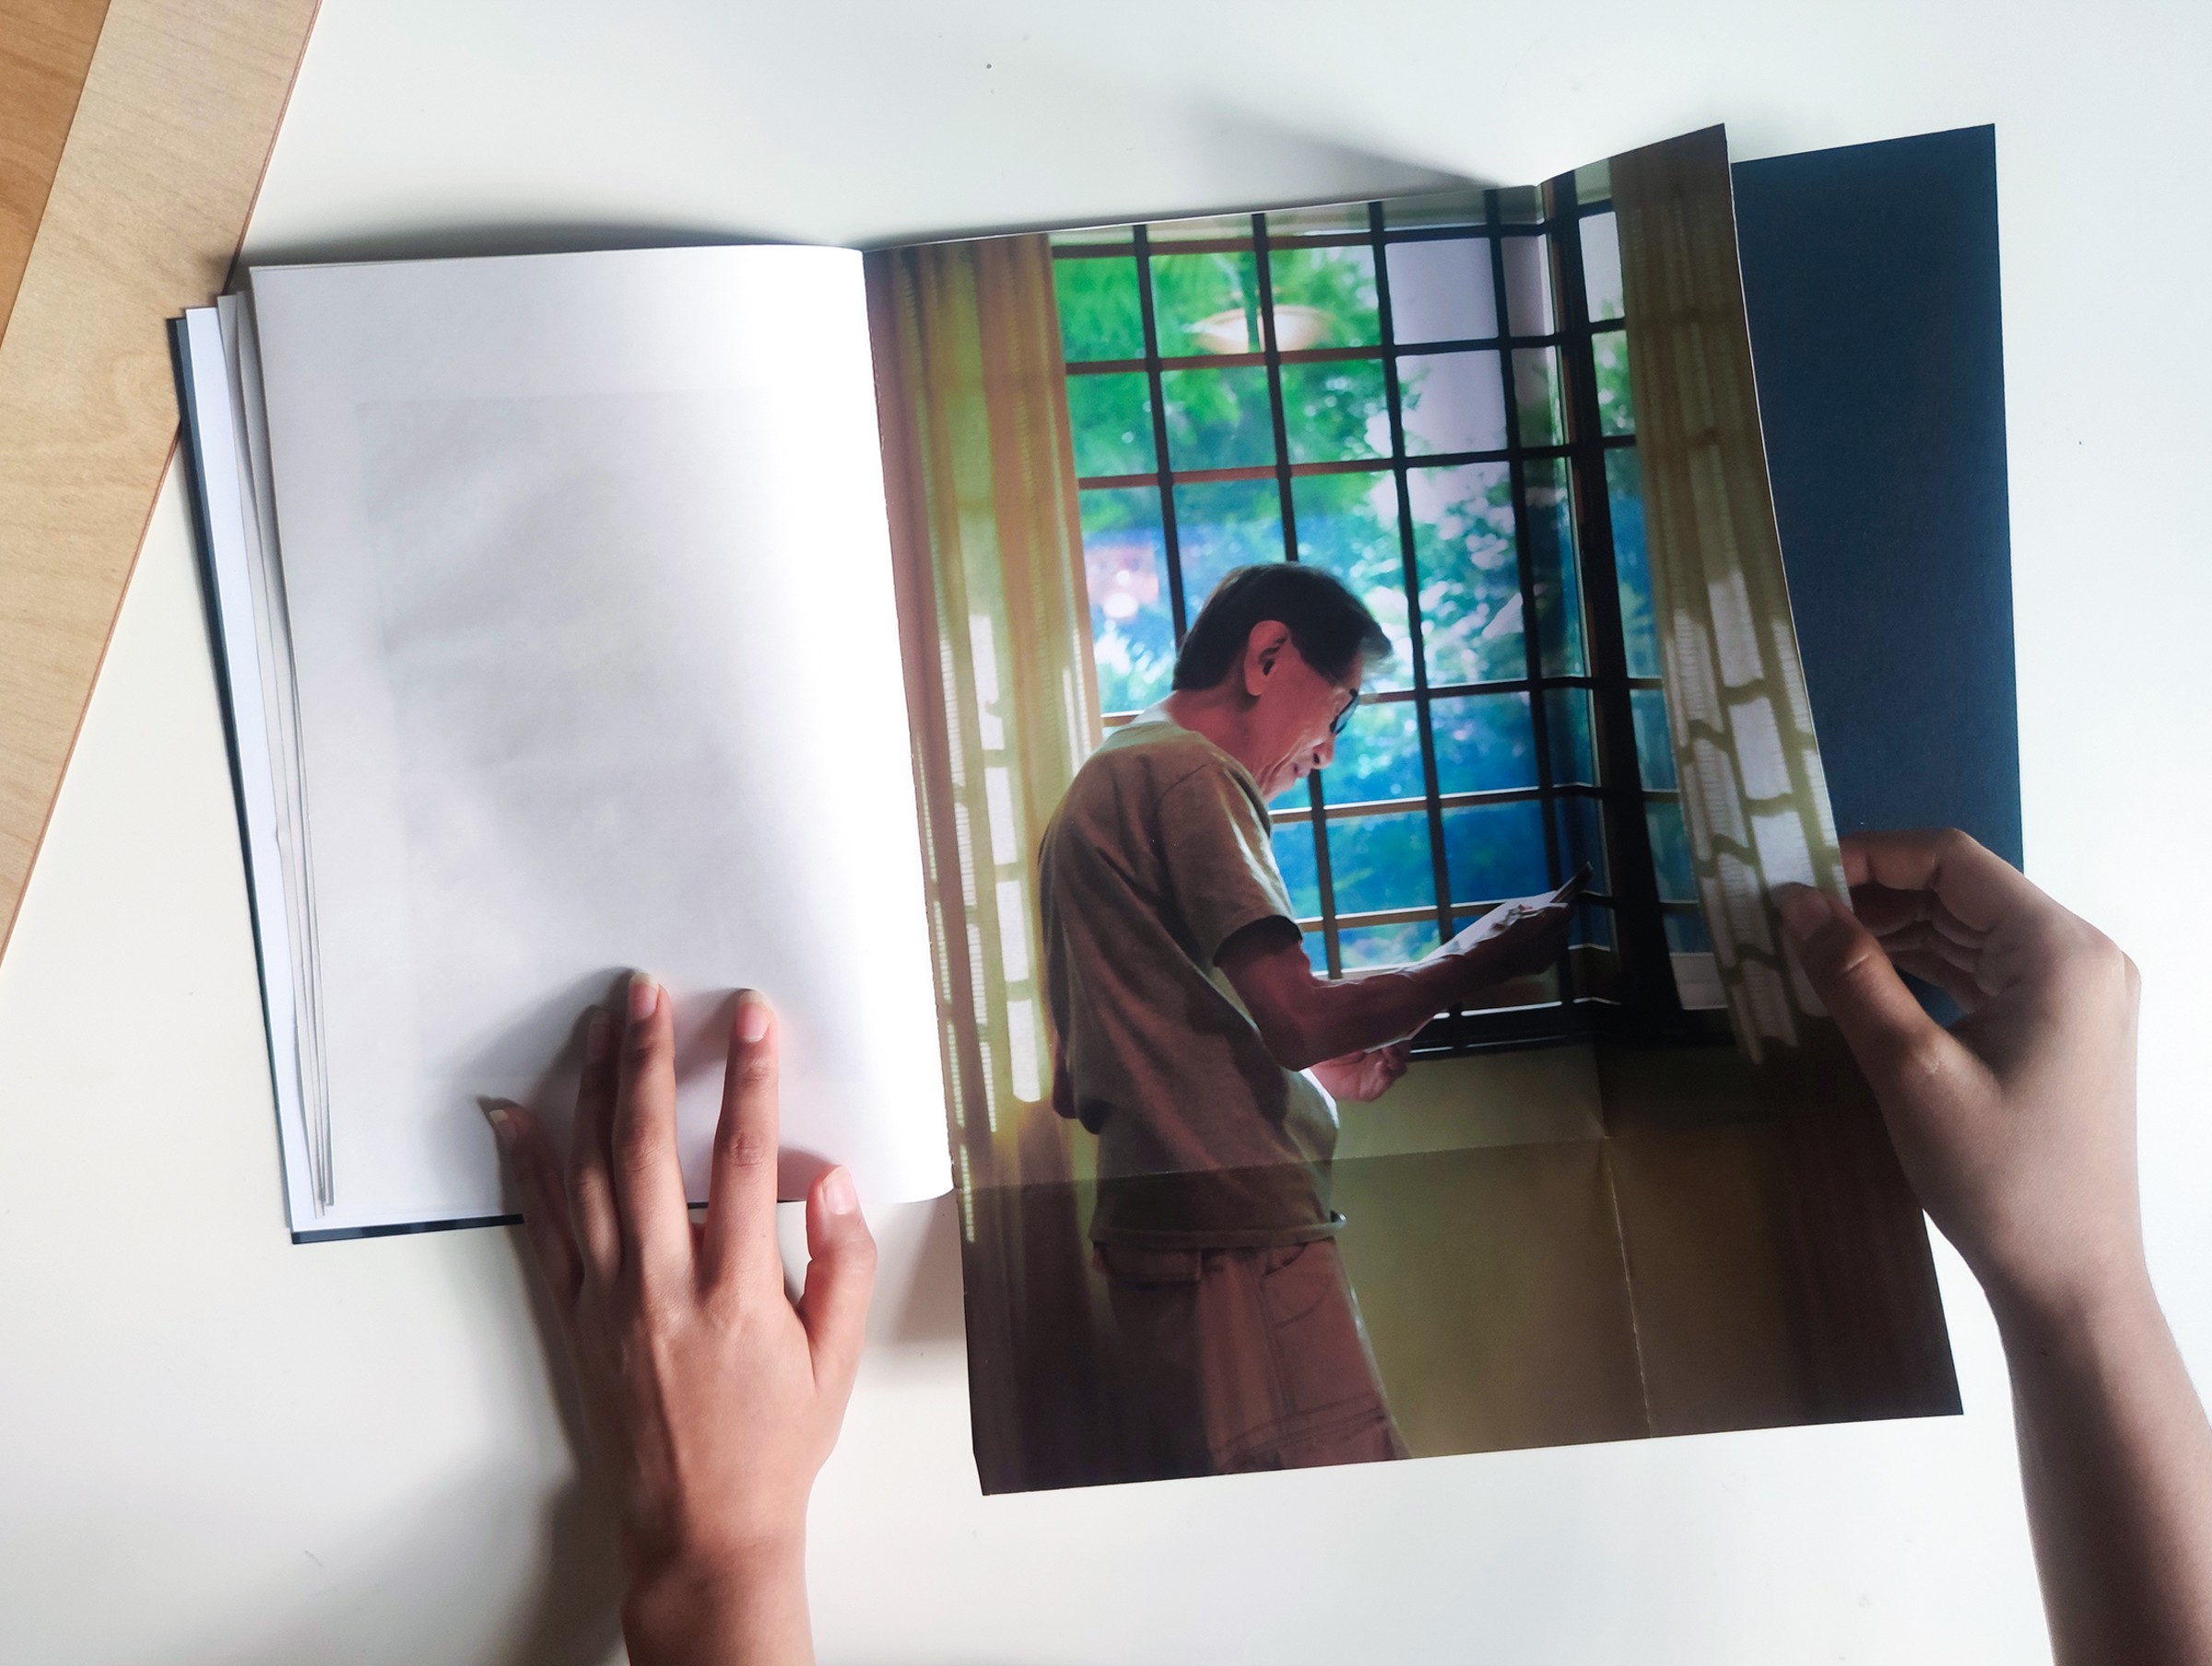 Photographs of a book